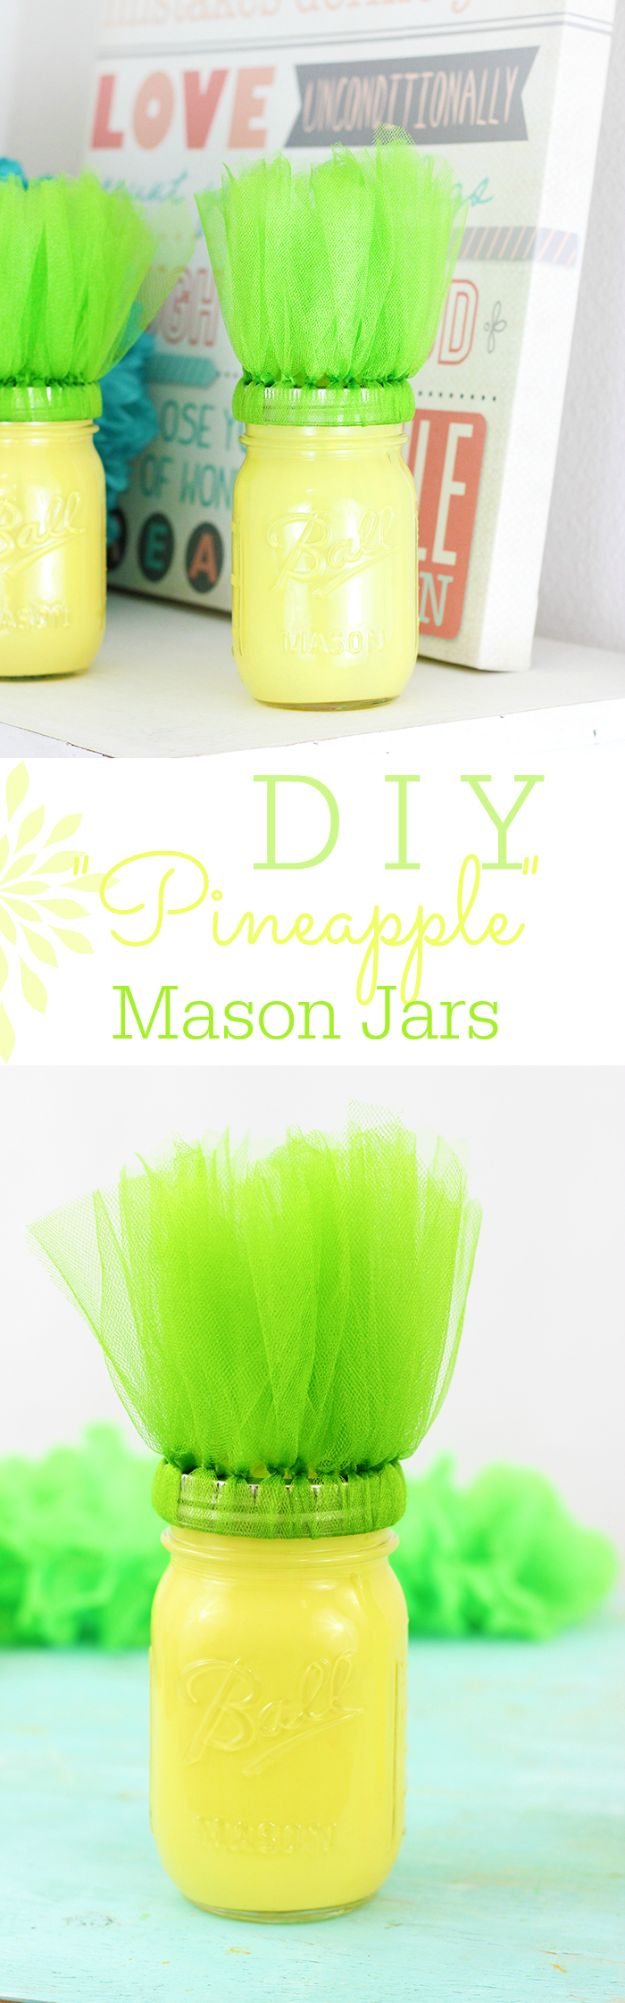 Pineapple Crafts - DIY Pineapple Mason Jars - Cute Craft Projects That Make Cool DIY Gifts - Wall Decor, Bedroom Art, Jewelry Idea